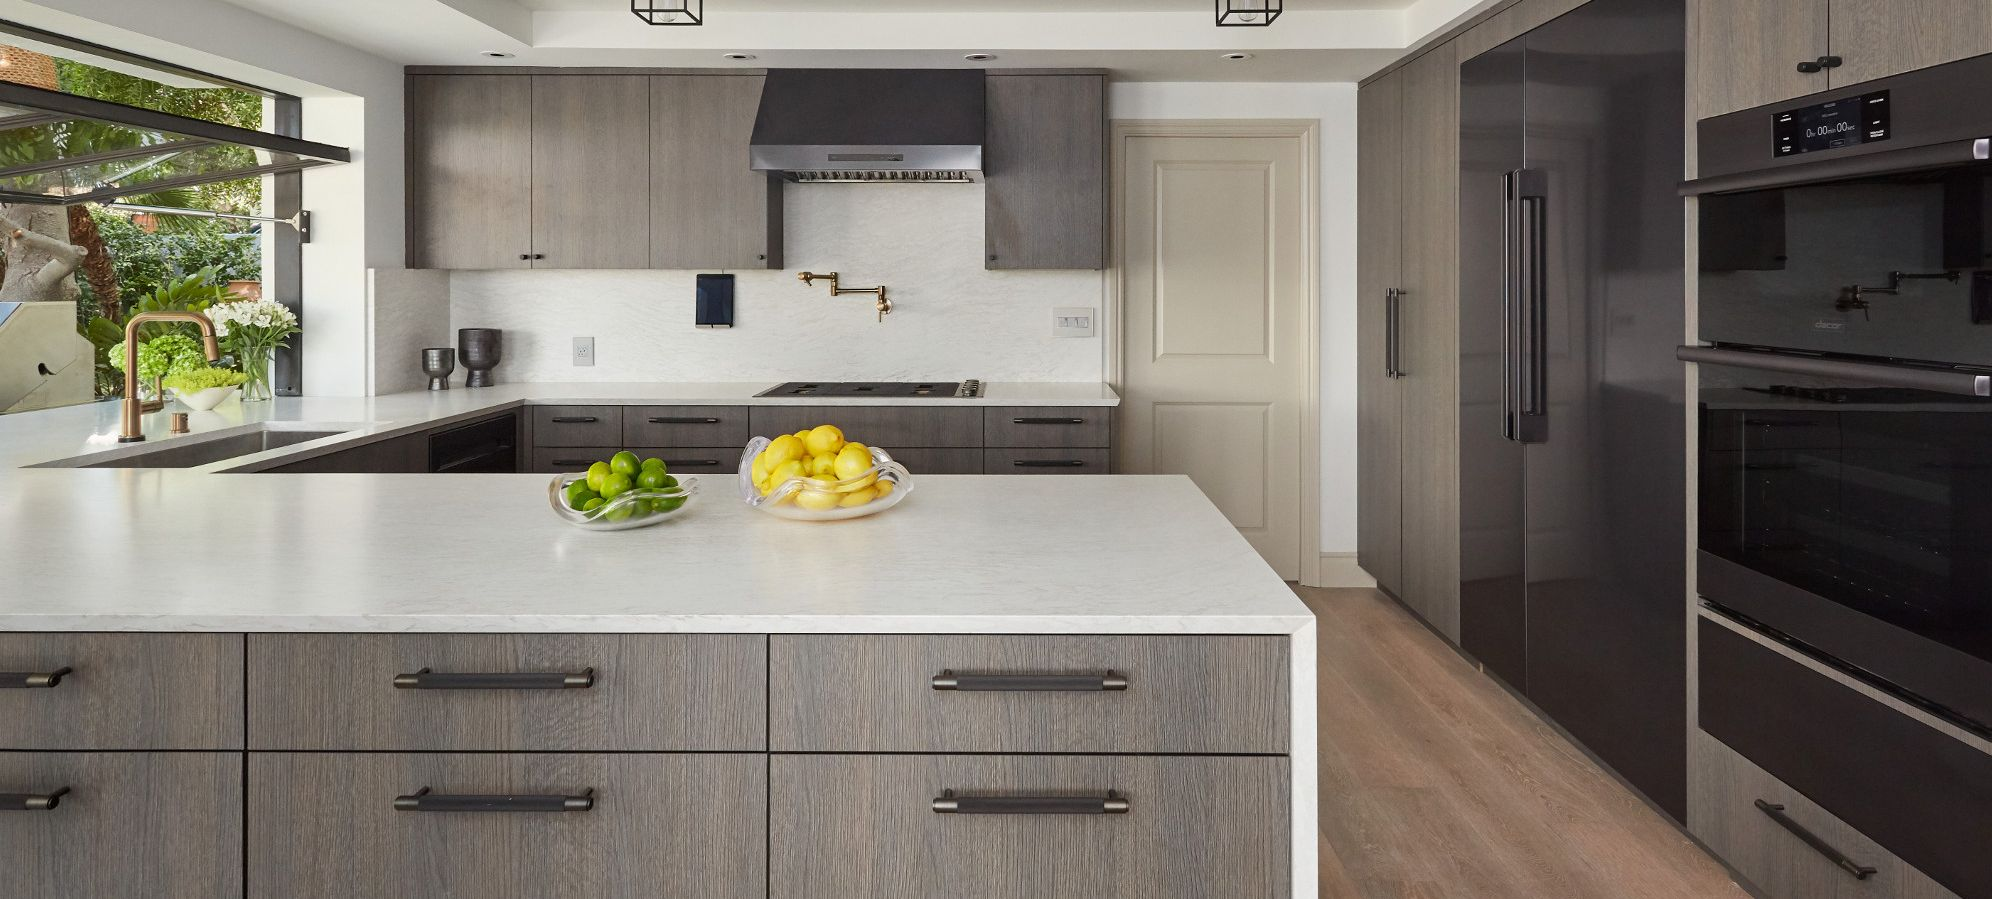 Cambria-quartz-countertops-Ironsbridge-Matte-kitchen